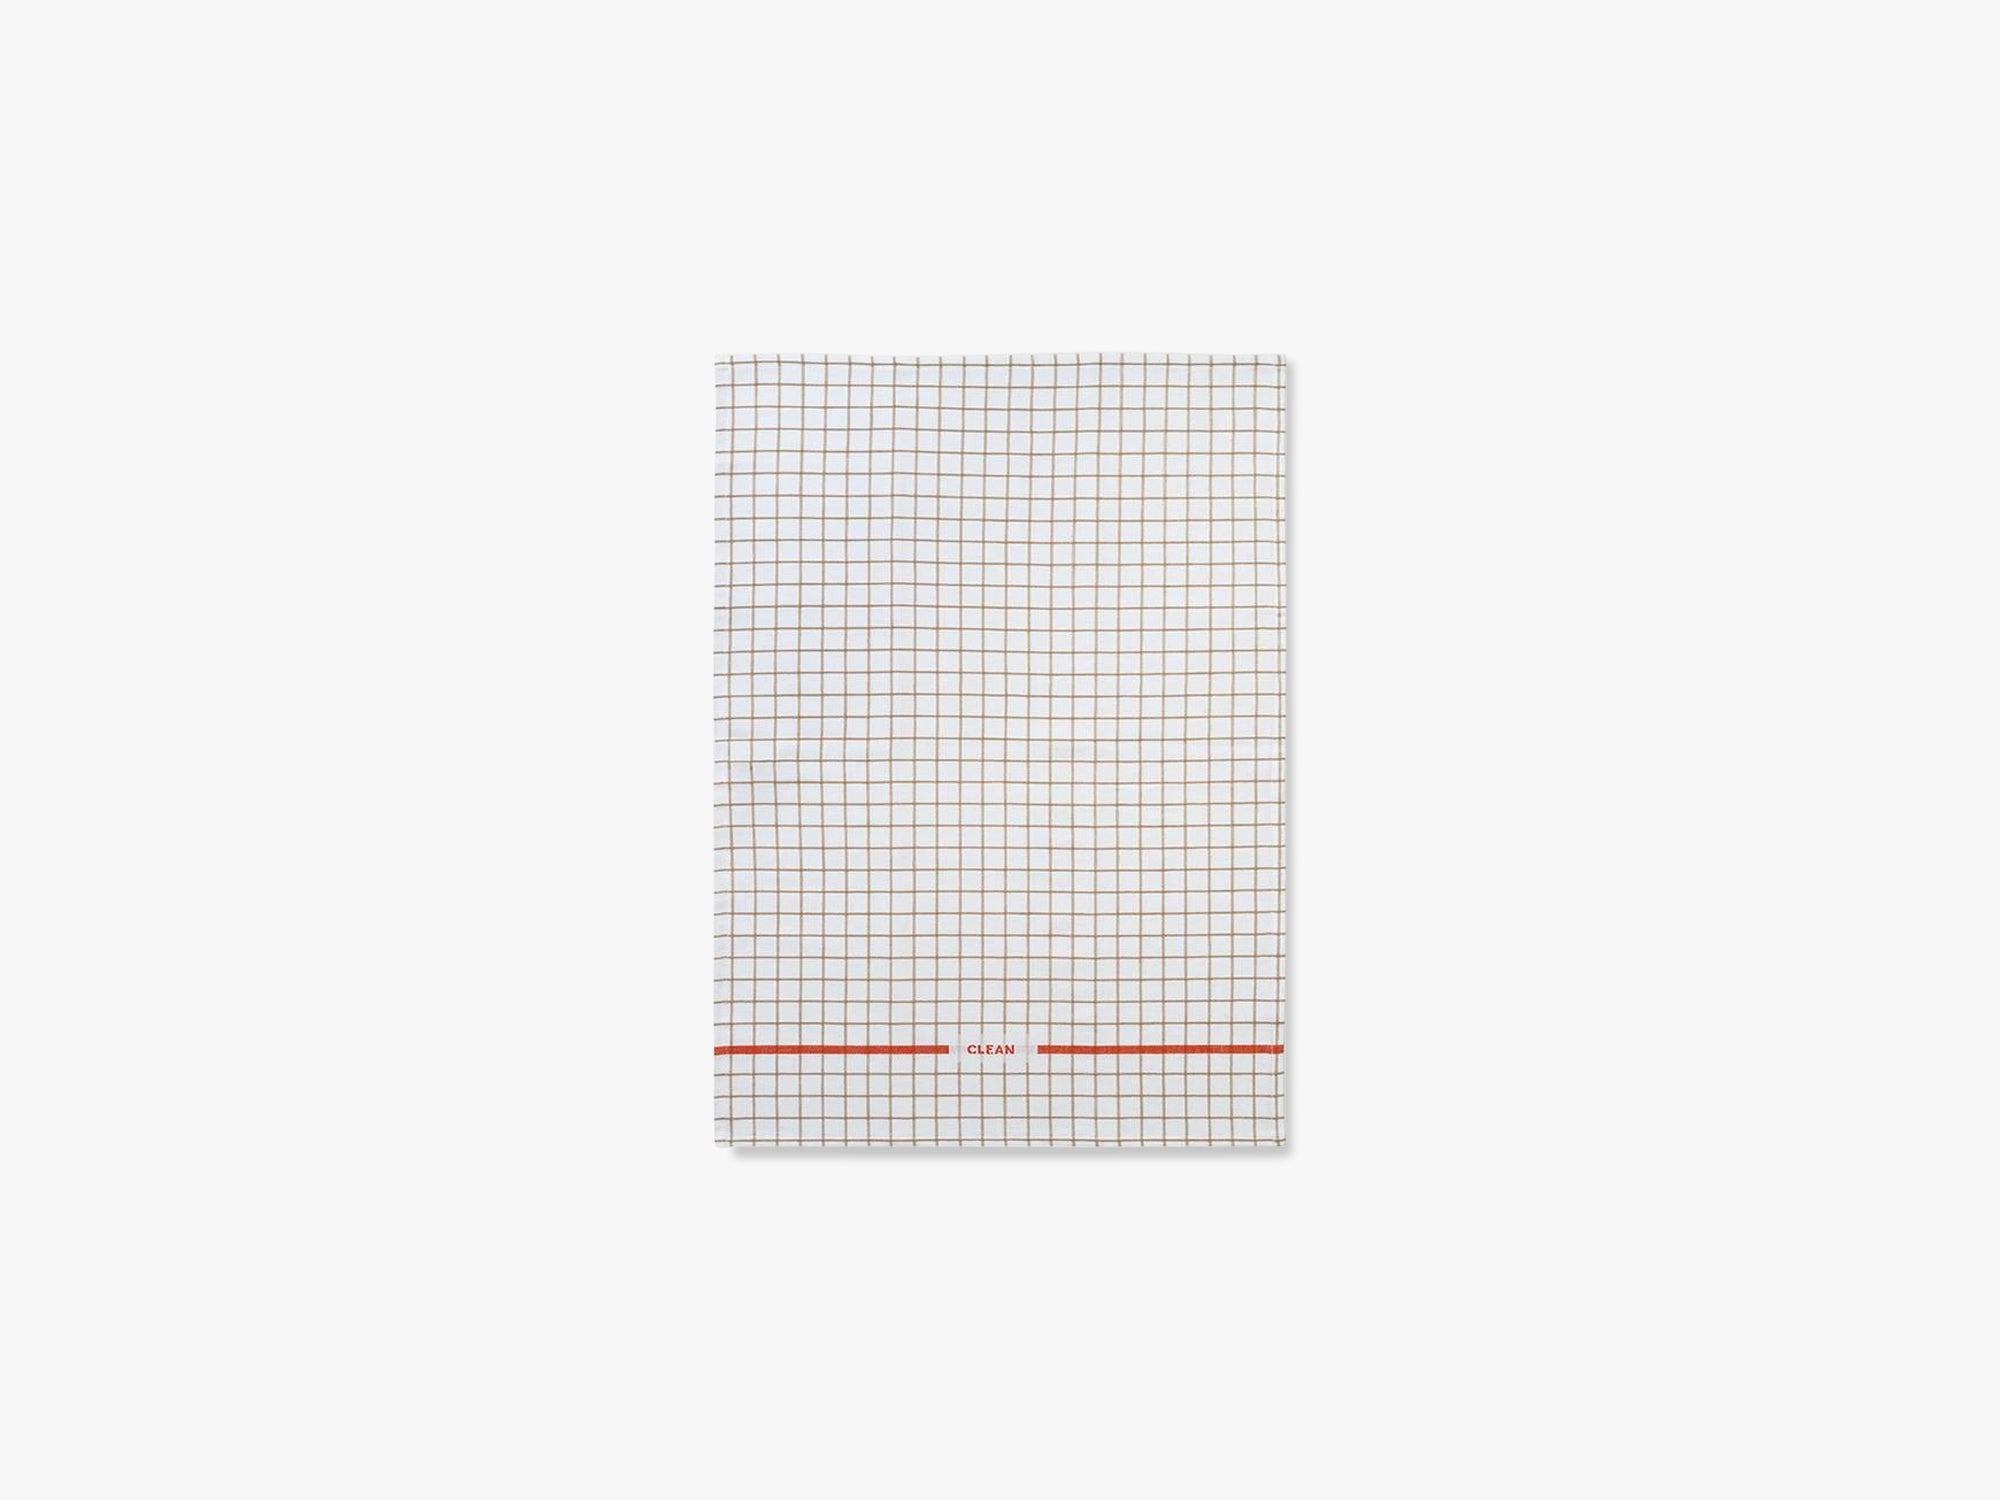 Ren viskestykke Grid, Sand/spicy orange fra Normann Copenhagen